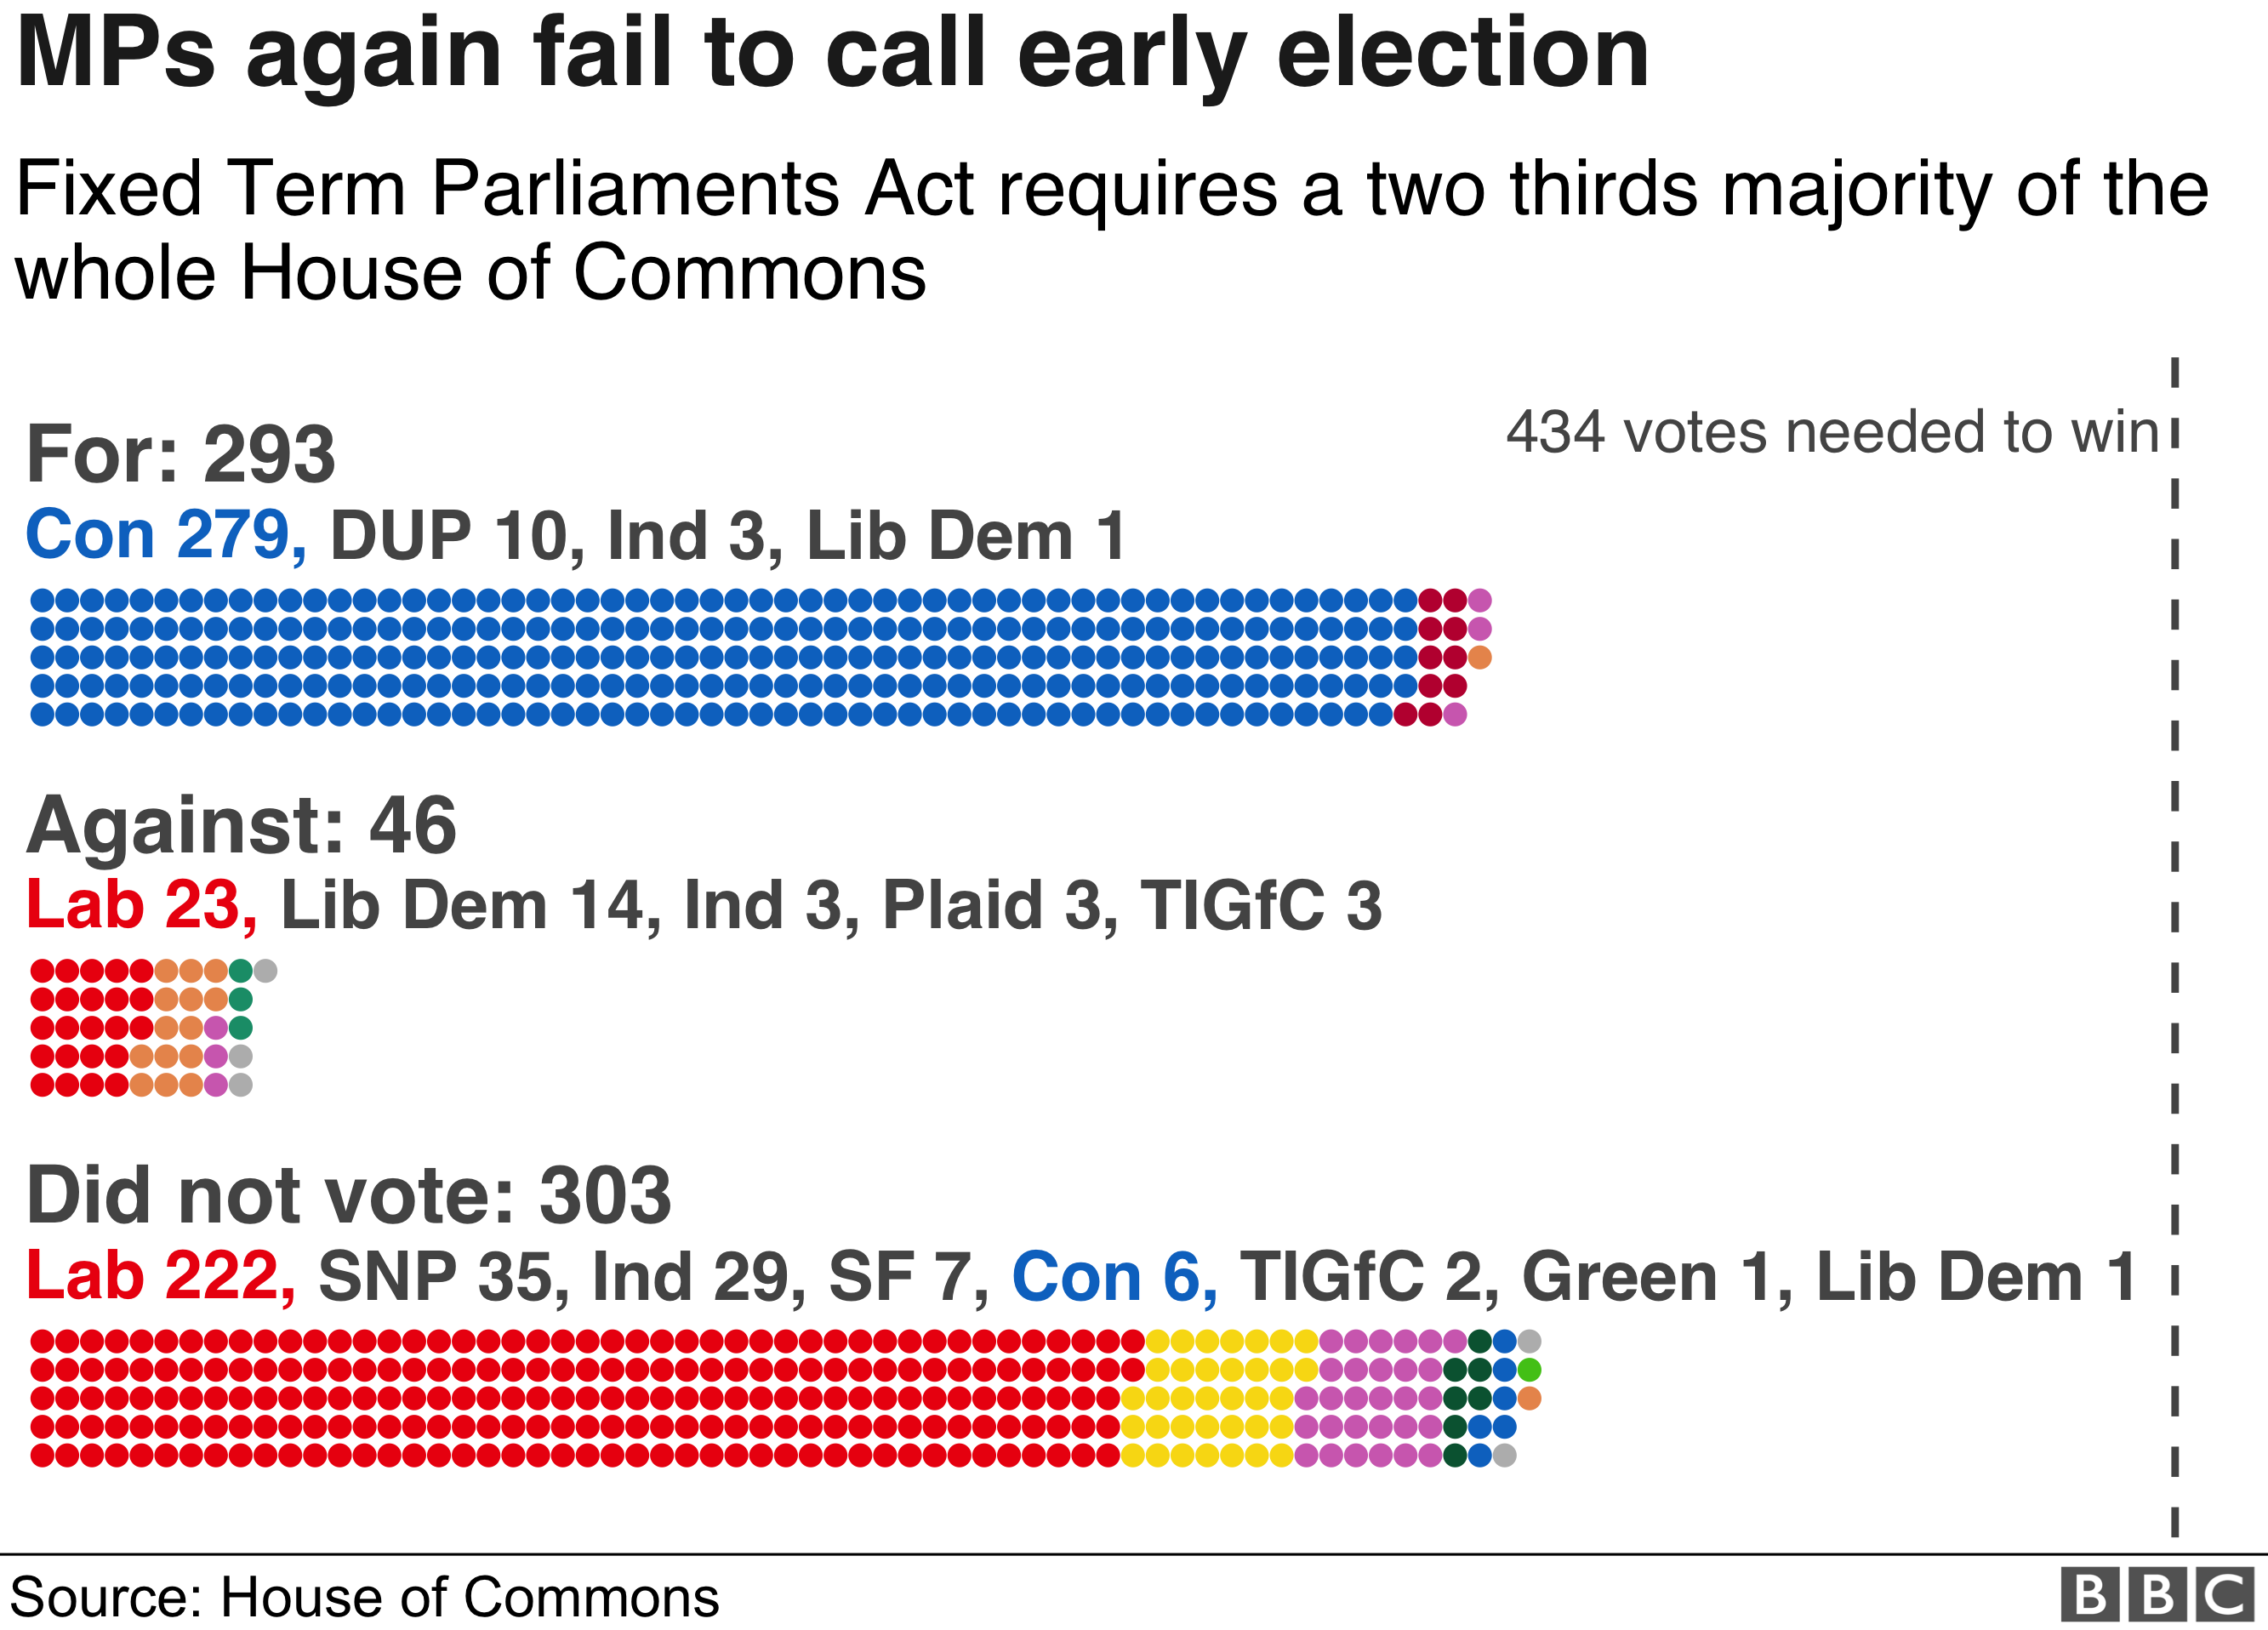 For: 293 - Con 279, DUP 10, Ind 3, Lib Dem 1. Against: 46 - Lab 23, Lib Dem 14, Ind 3, Plaid 3, TIGfC 3. Did not vote: 303 - Lab 222, SNP 35, Ind 29, SF 7, Con 6, TIGfC 2, Green 1, Lib Dem 1